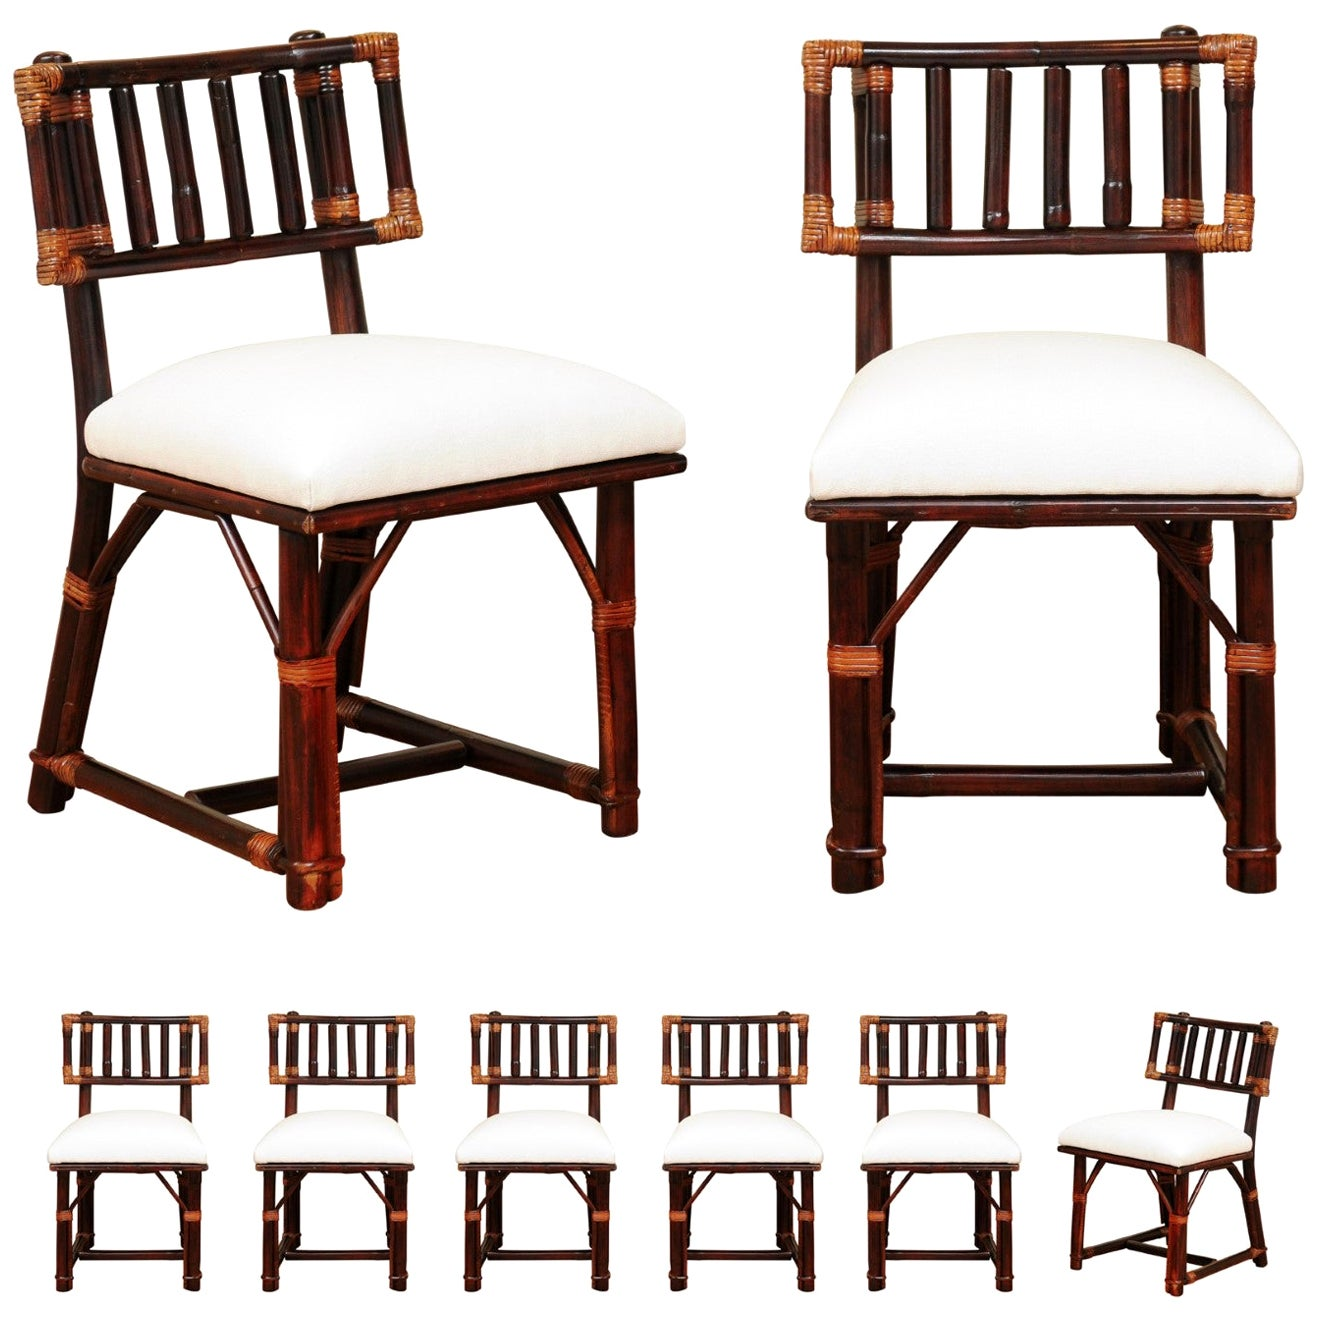 Radiant Set of 8 Rattan Chairs in Cordovan and Caramel by Wisner for Ficks Reed